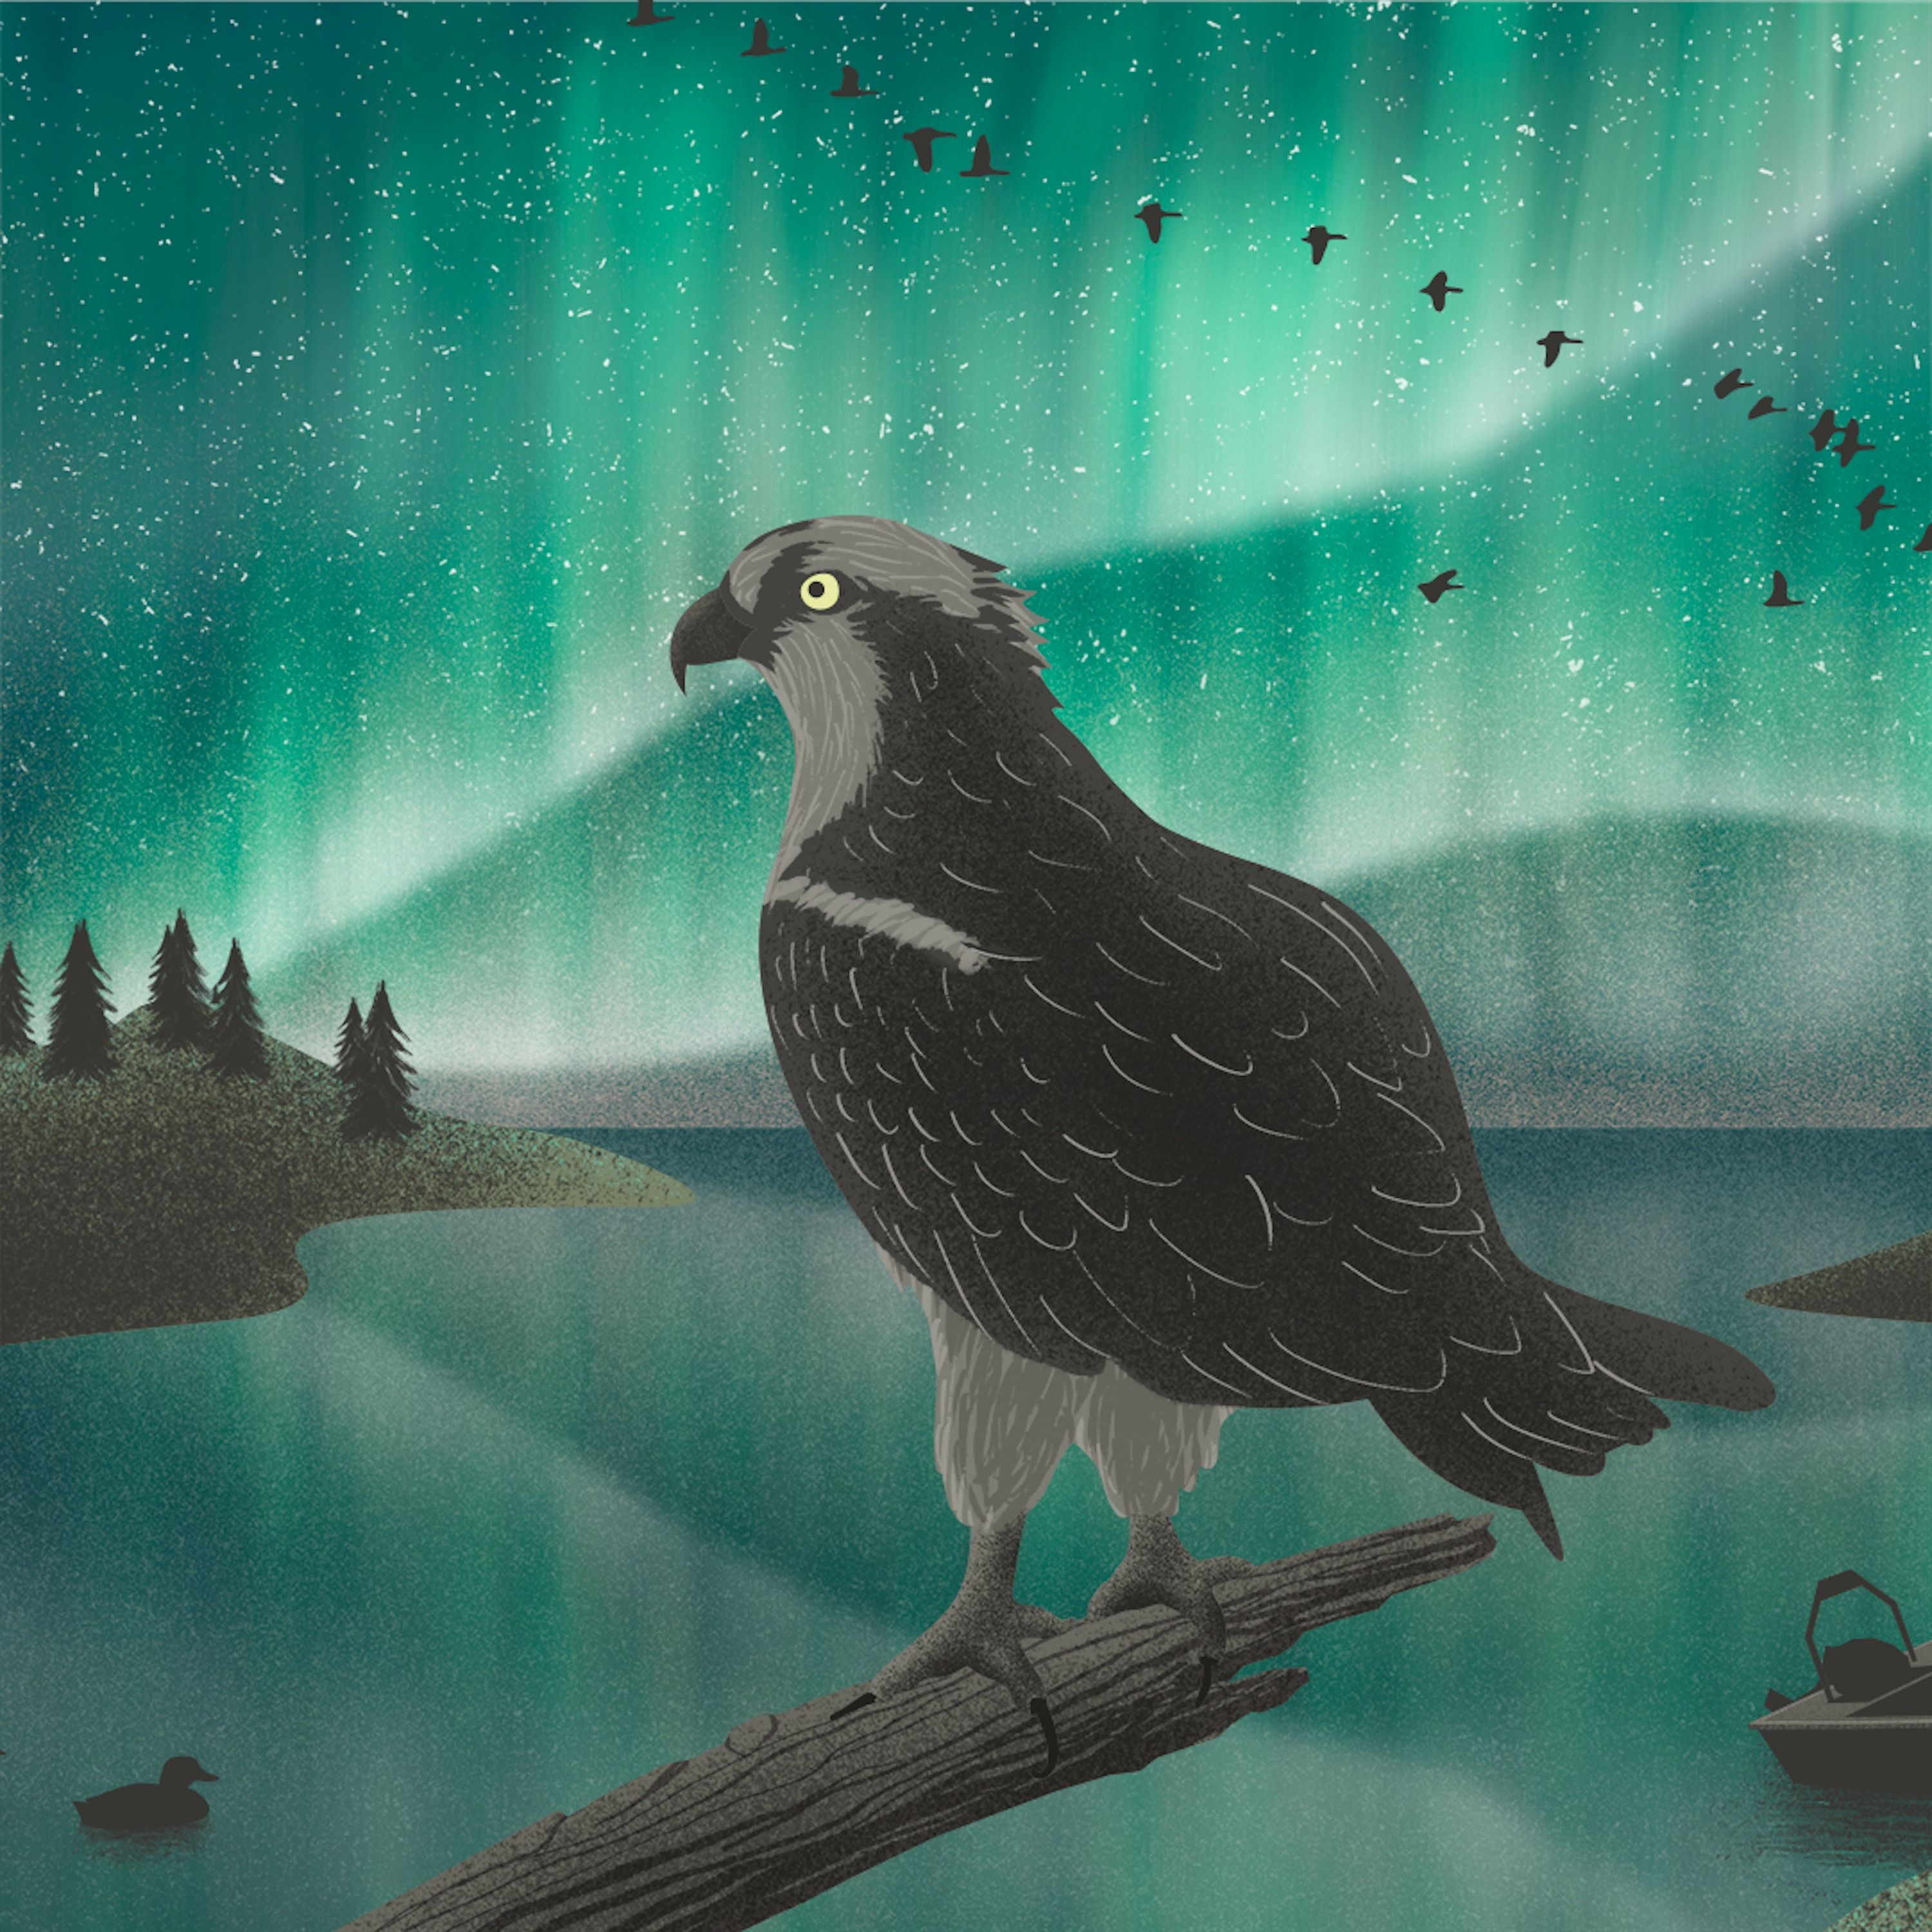 Protecting Biodiversity in the Boreal Forest